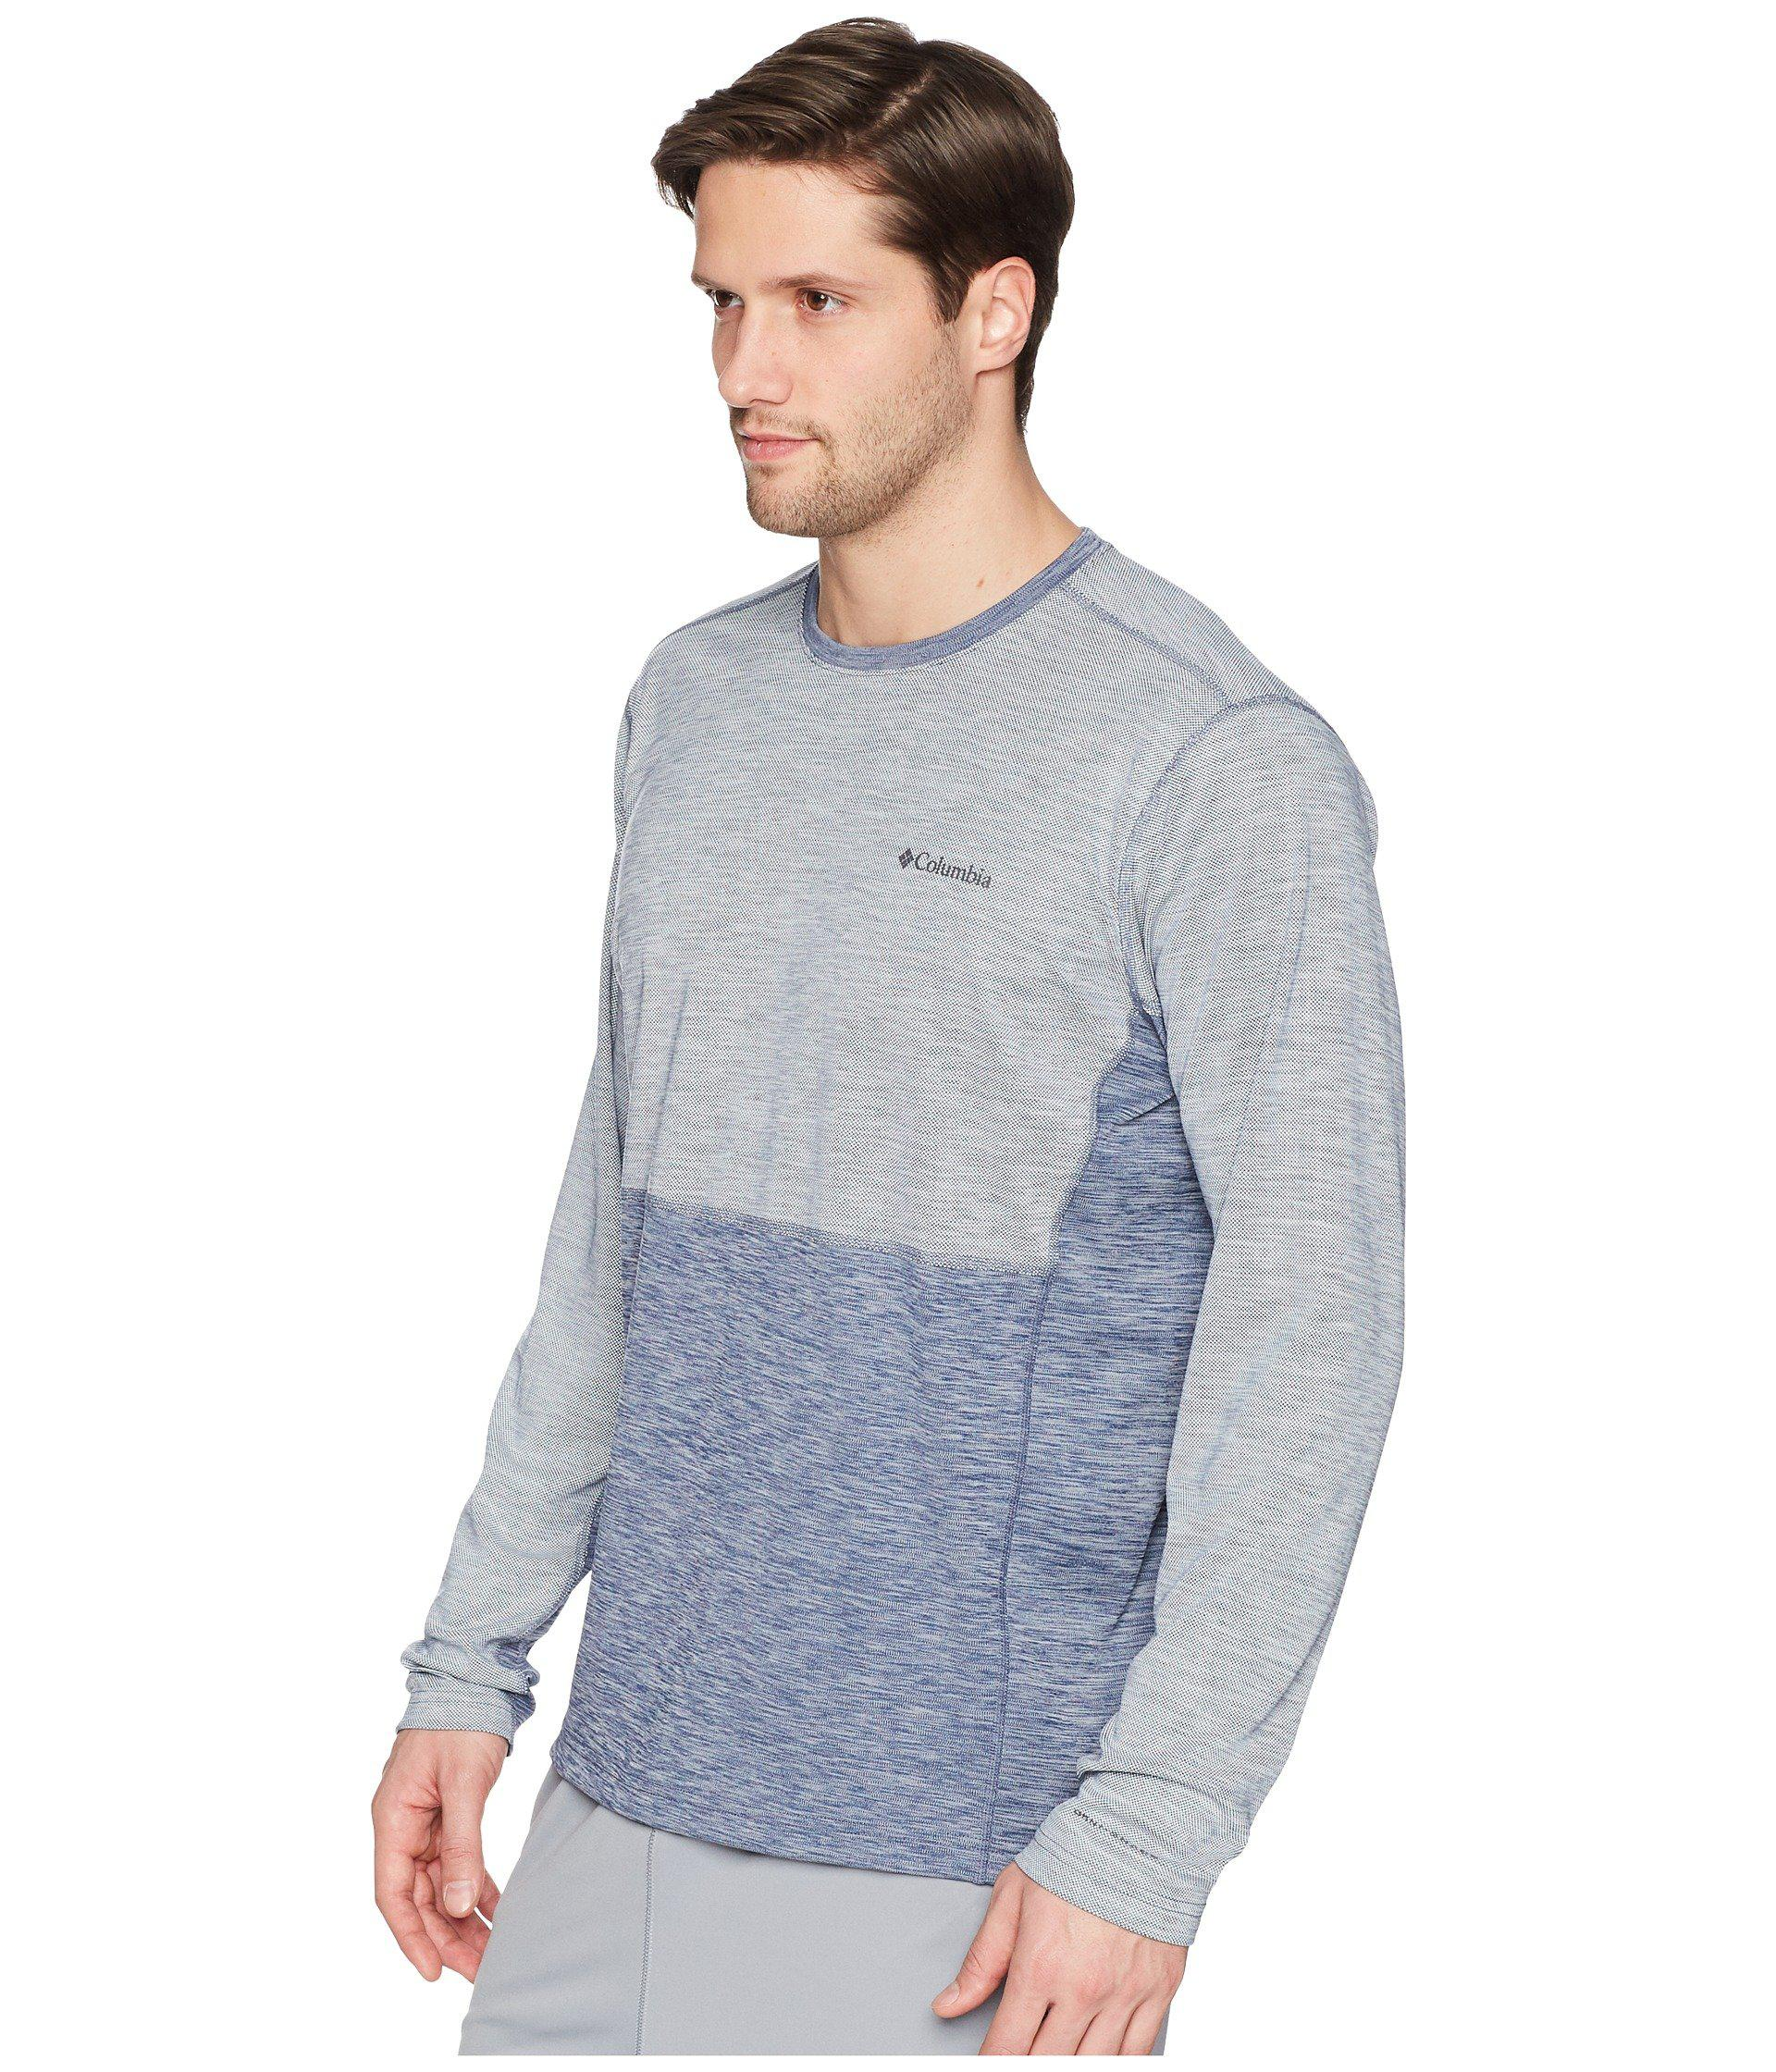 ab04d8144a8 Columbia Solar Chill Long Sleeve Top (carbon) Men's Long Sleeve ...